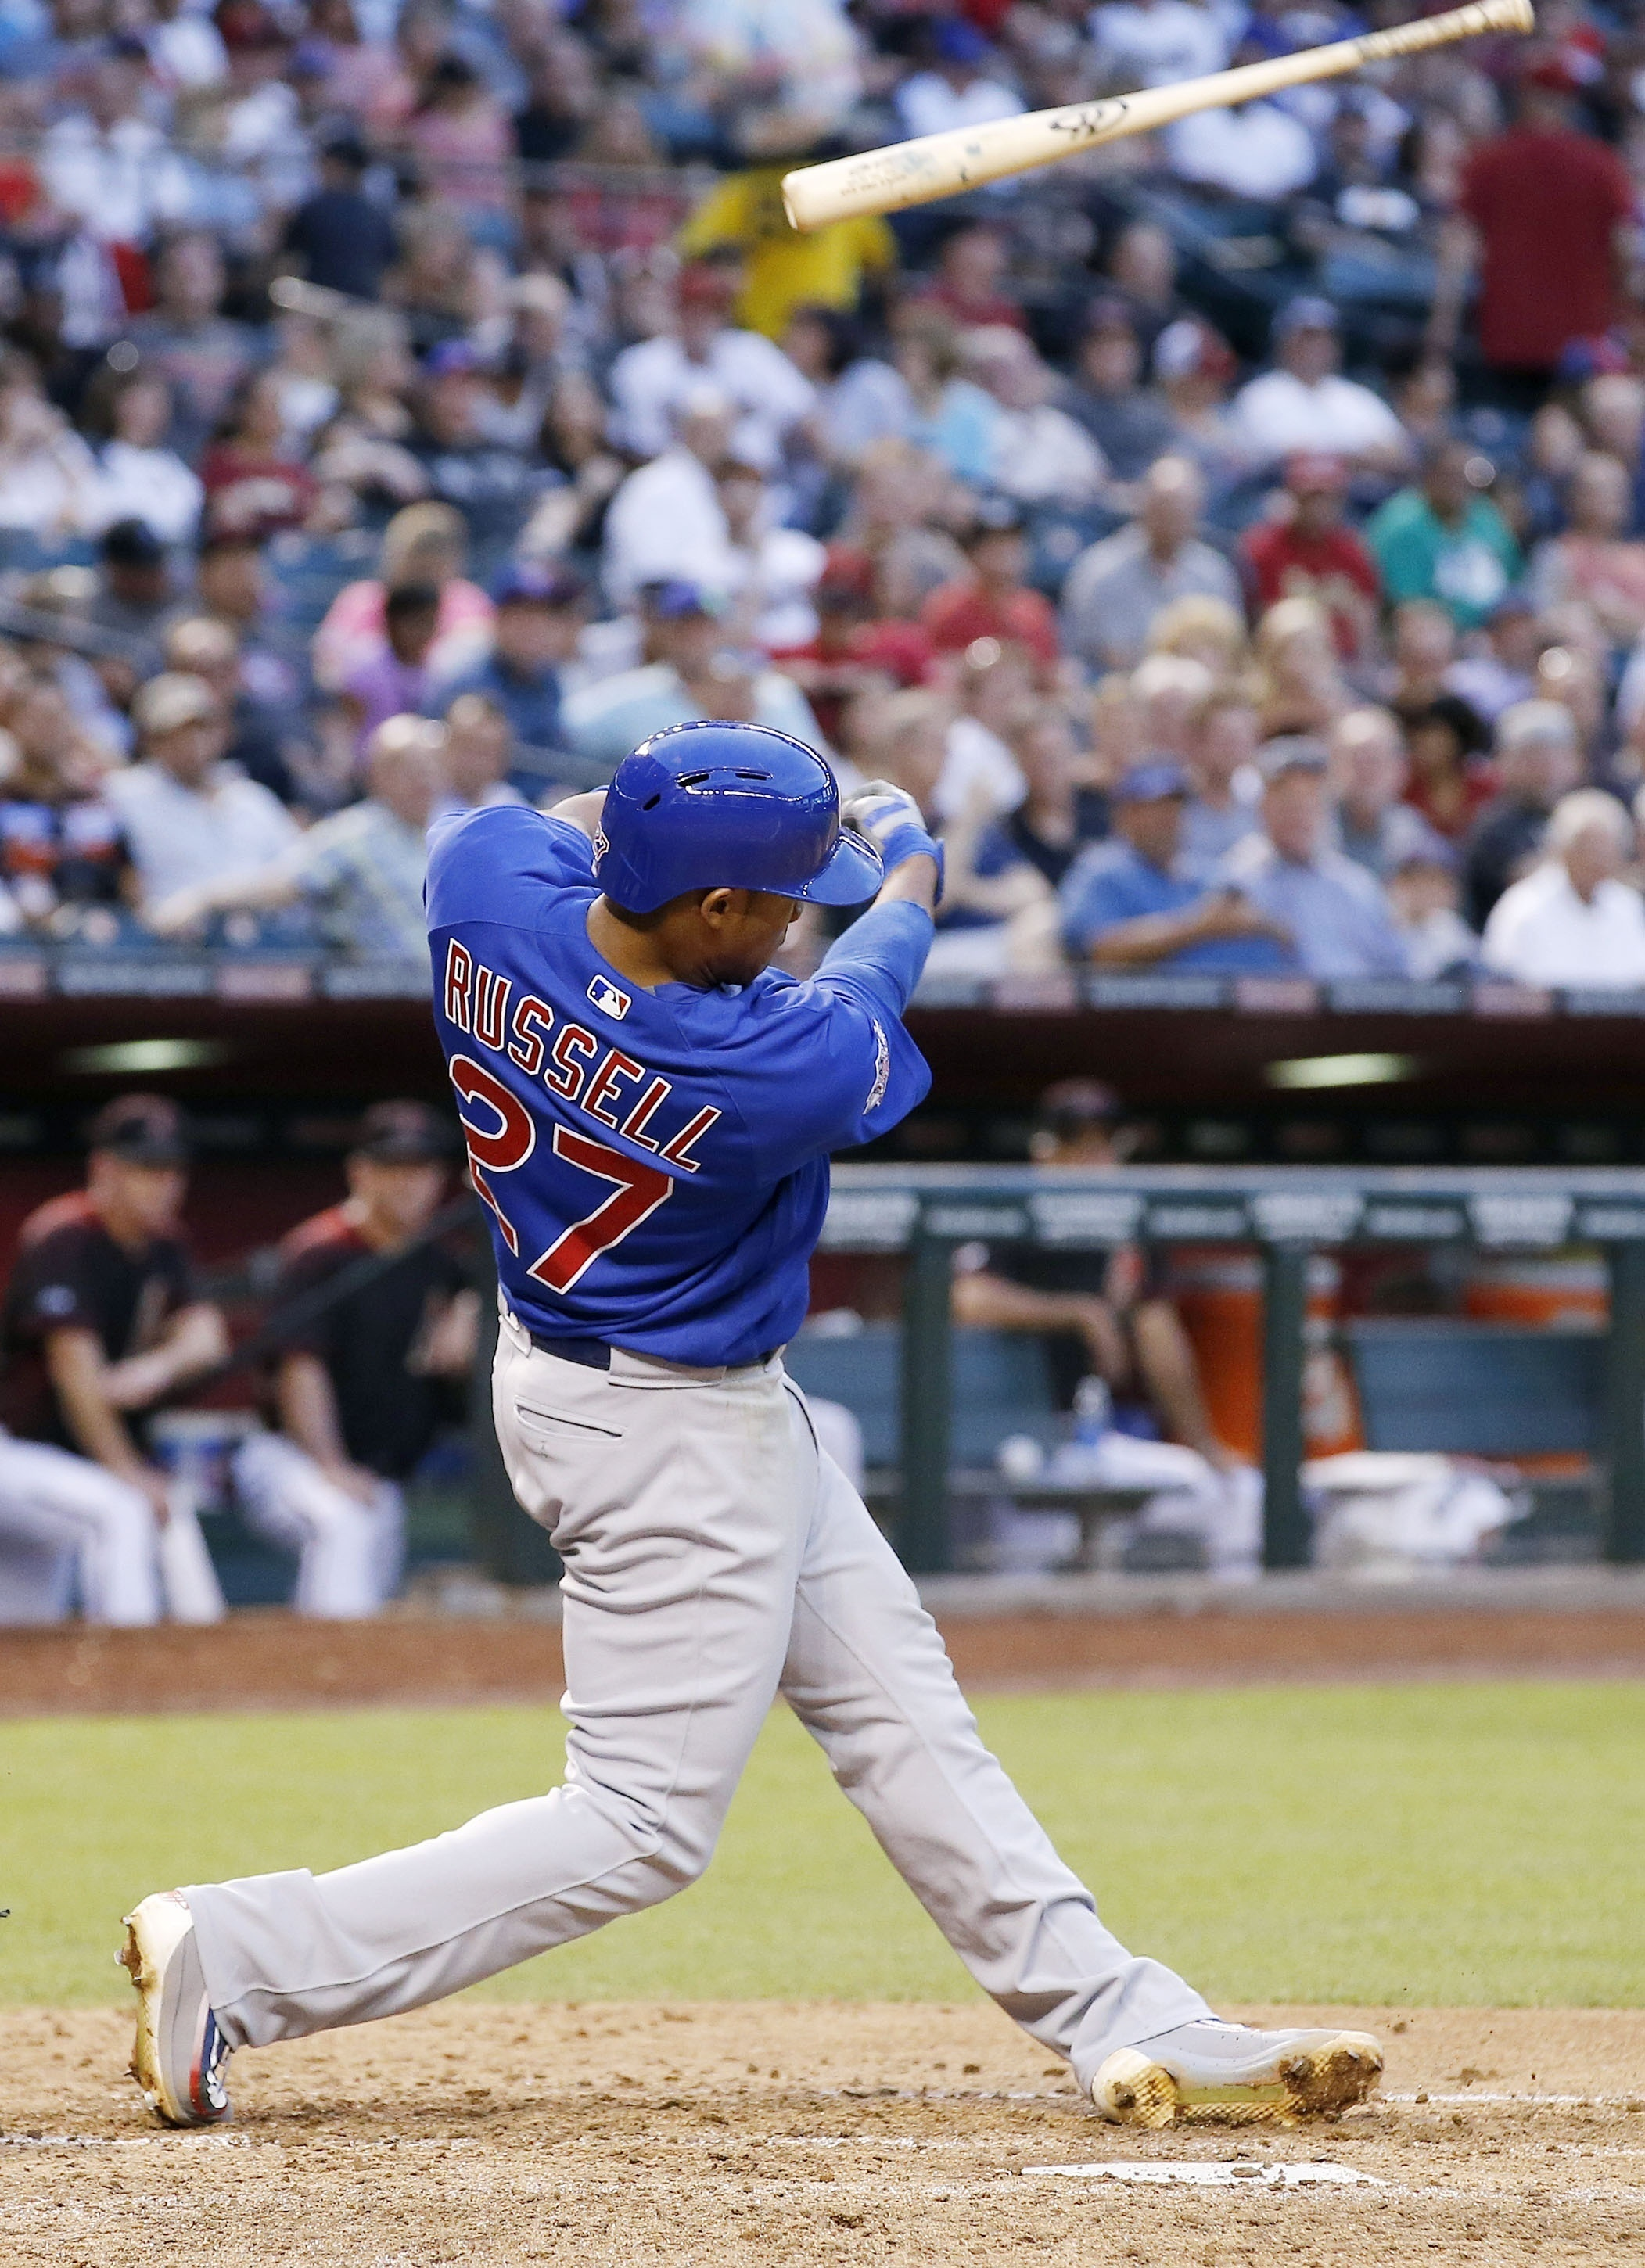 Chicago Cubs' Addison Russell loses the grip on his bat as he swings during the fifth inning of a baseball game against the Arizona Diamondbacks Saturday, April 9, 2016, in Phoenix. (AP Photo/Ross D. Franklin)